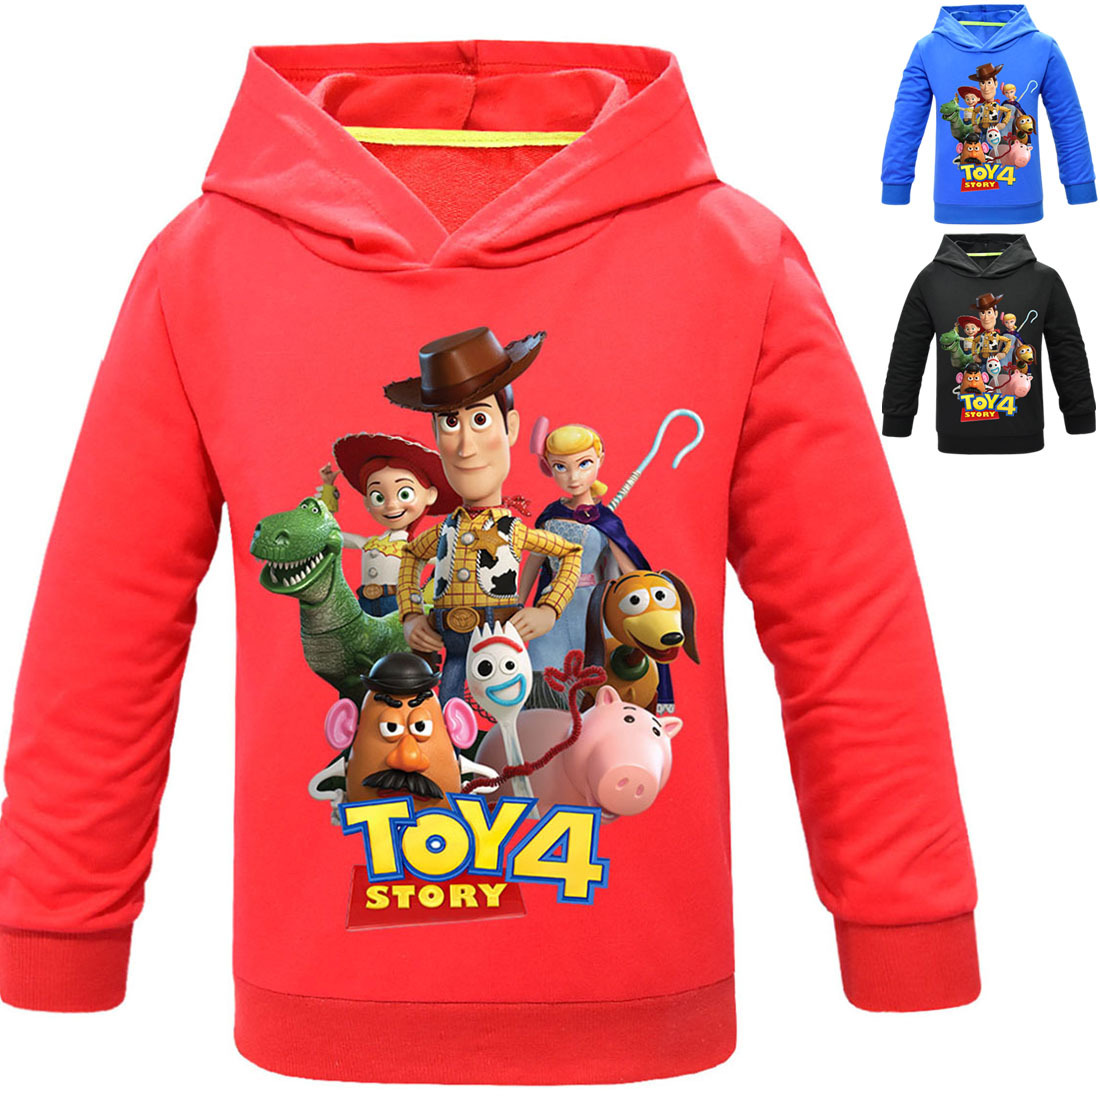 Toy Story 4 Forky Alien Hoodies Swearshirts Casual Long Full Sleeve Hoodies Streetwear Hip Hop Pullover T-shirt 4-12T Boy Girl(China)